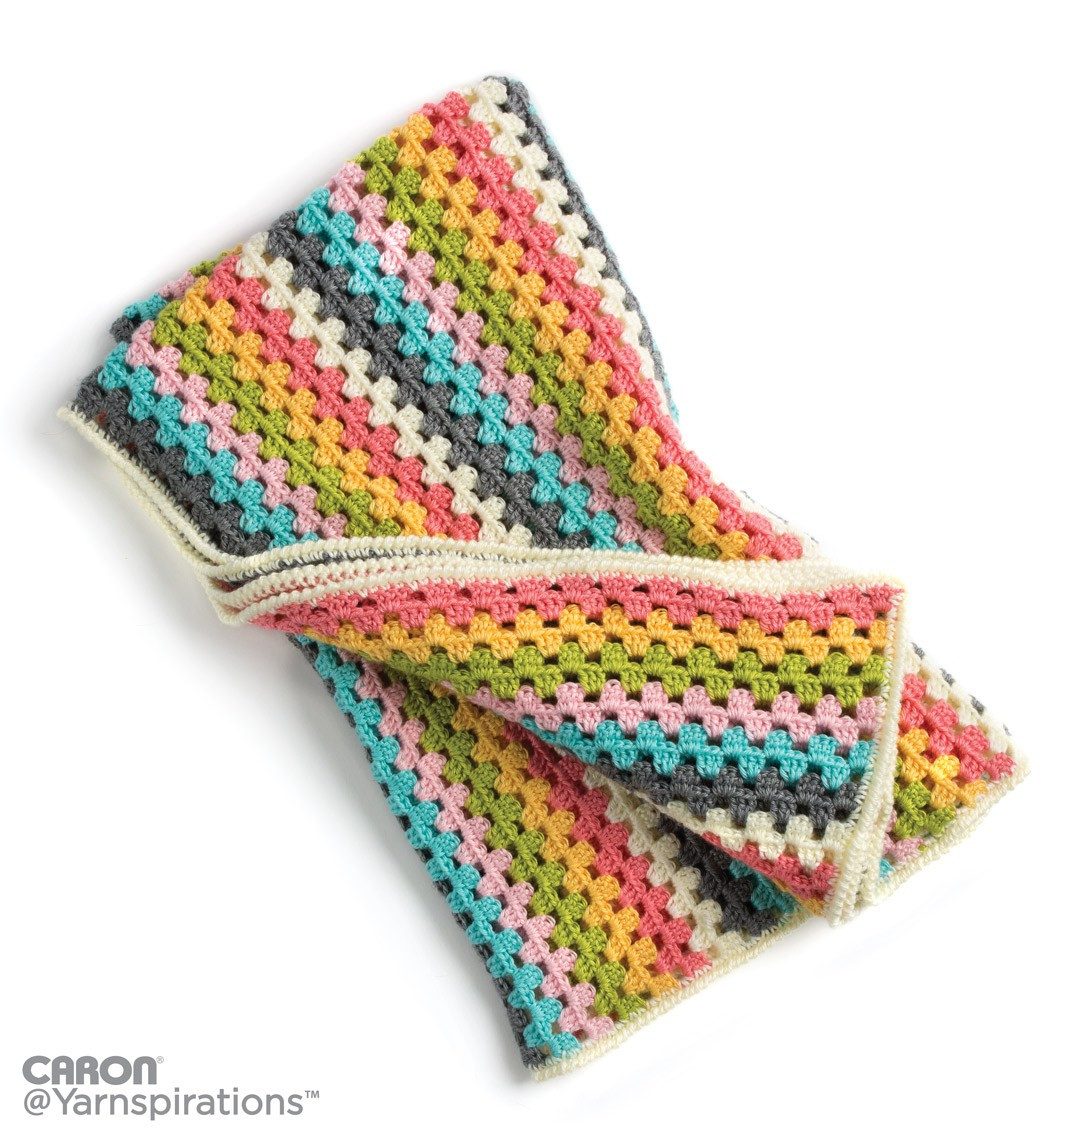 Caron Granny Stripes Afghan Crochet Pattern